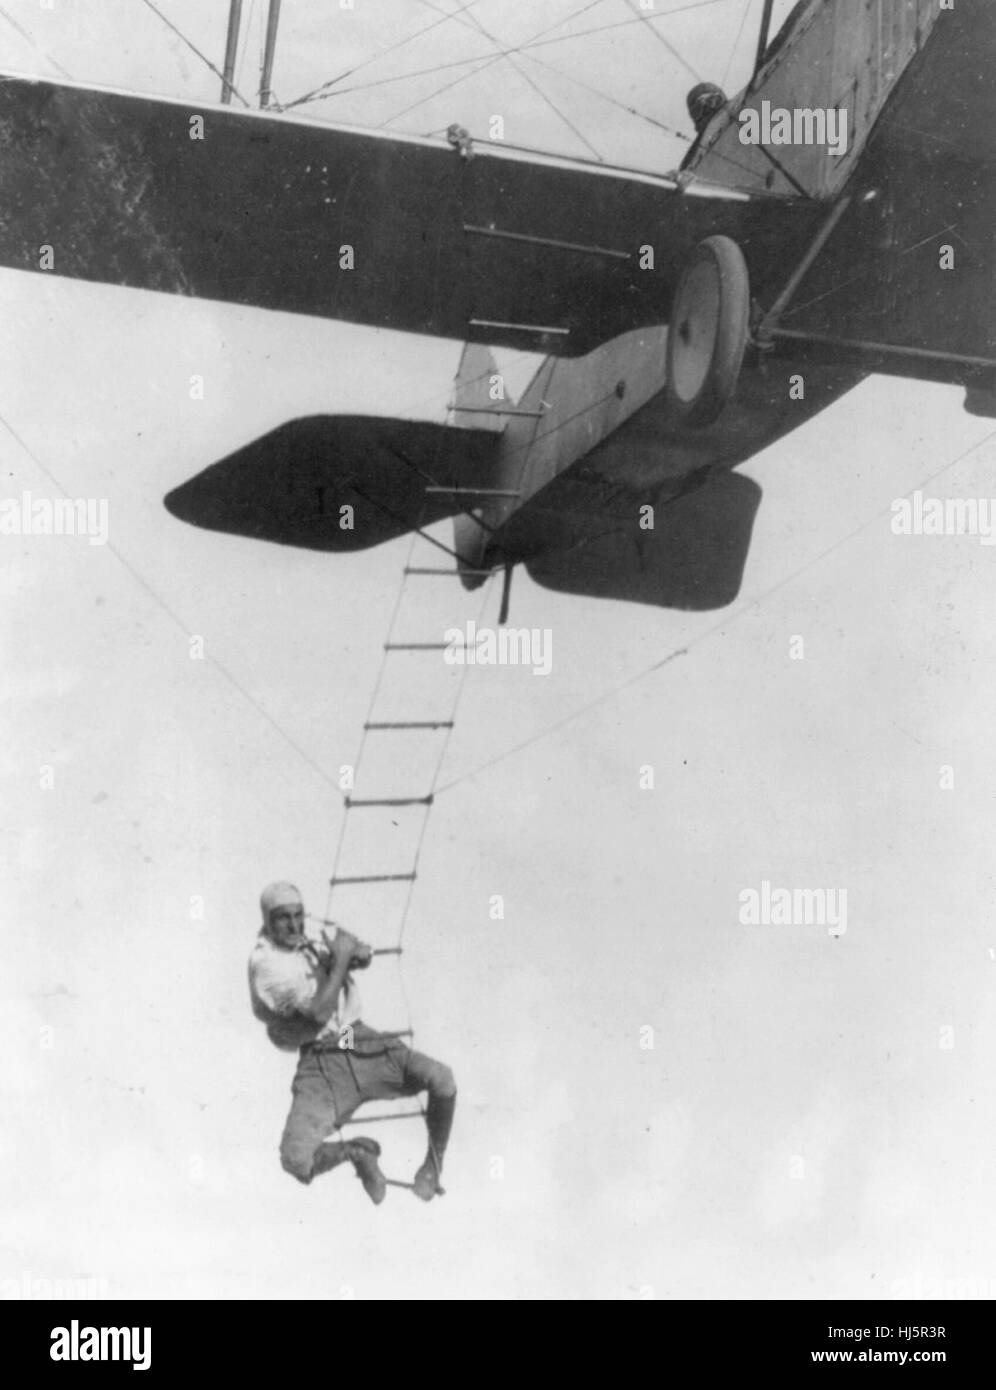 'Fearless Freddie', a Hollywood stunt man, clinging to a rope ladder slung from a plane flown by A.M. Maltrup, - Stock Image